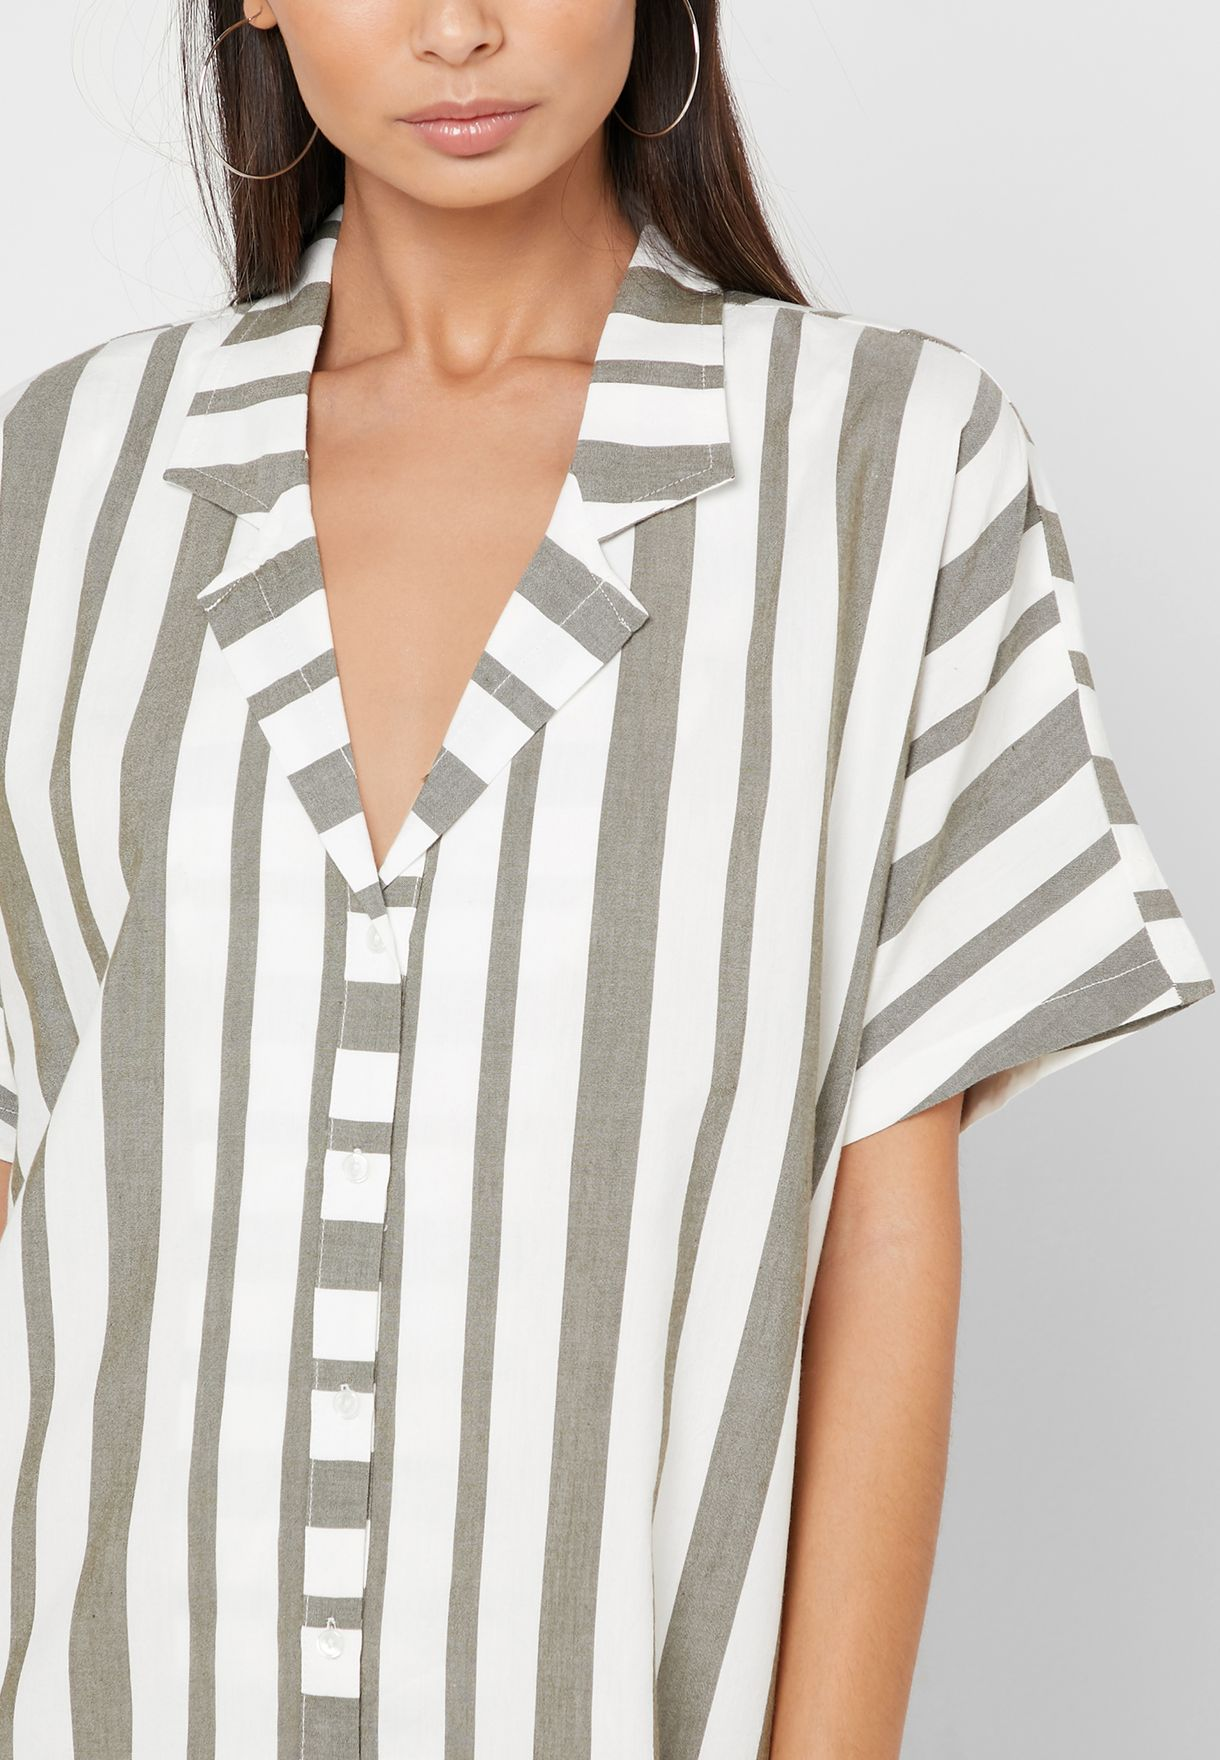 Rvca Storm Striped Dress - Fashion